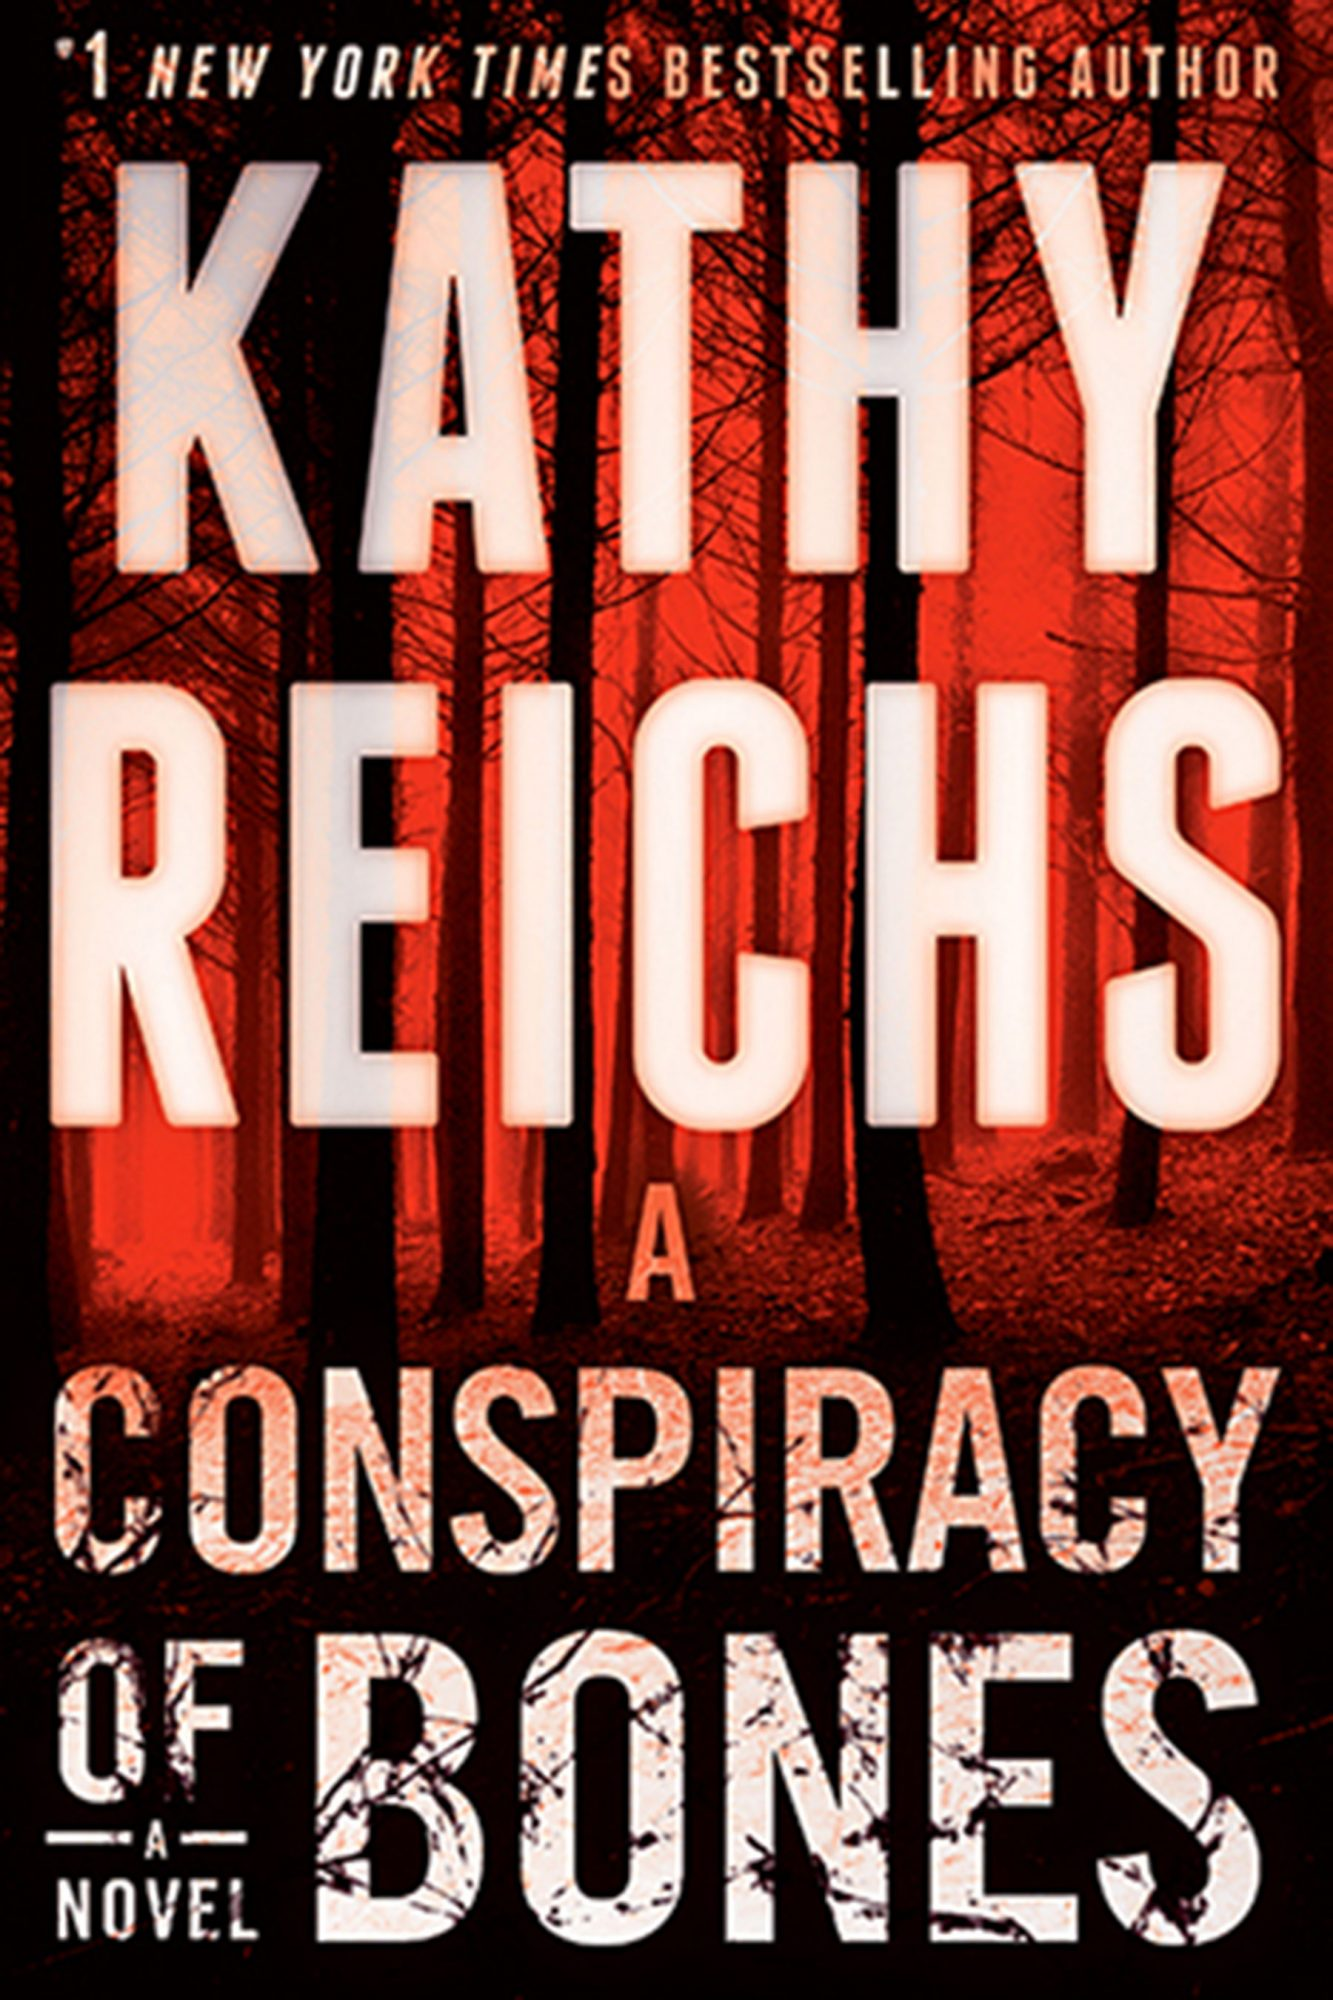 Conspiracy of Bones: Preview Kathy Reichs' twisty thriller | EW.com